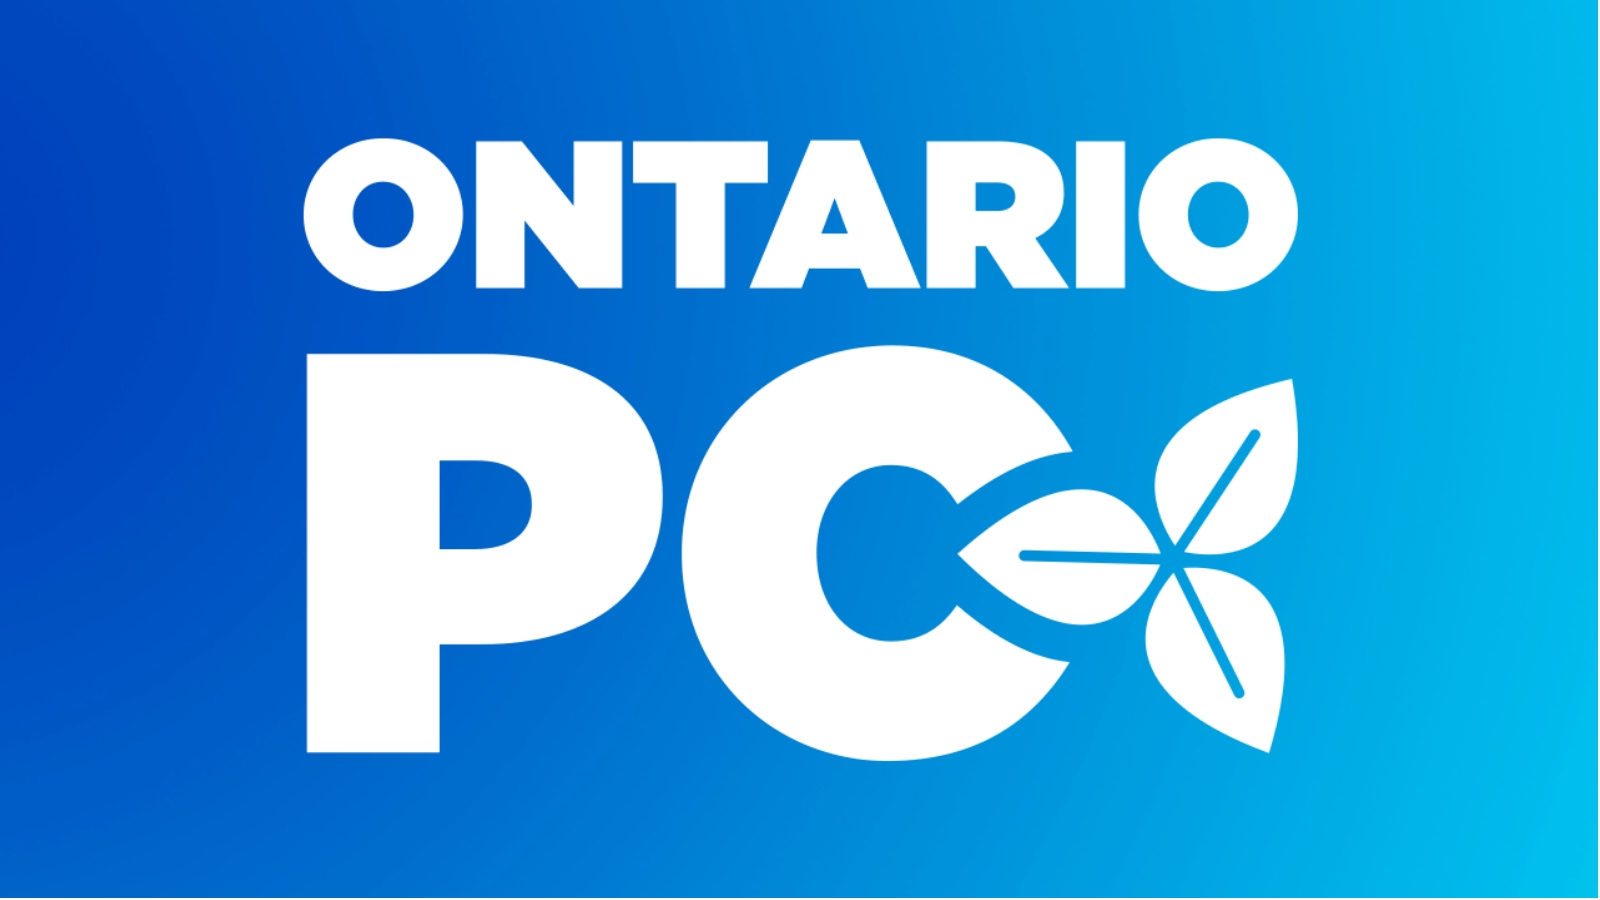 Statement from Ontario PC Leader Doug Ford on Nowruz